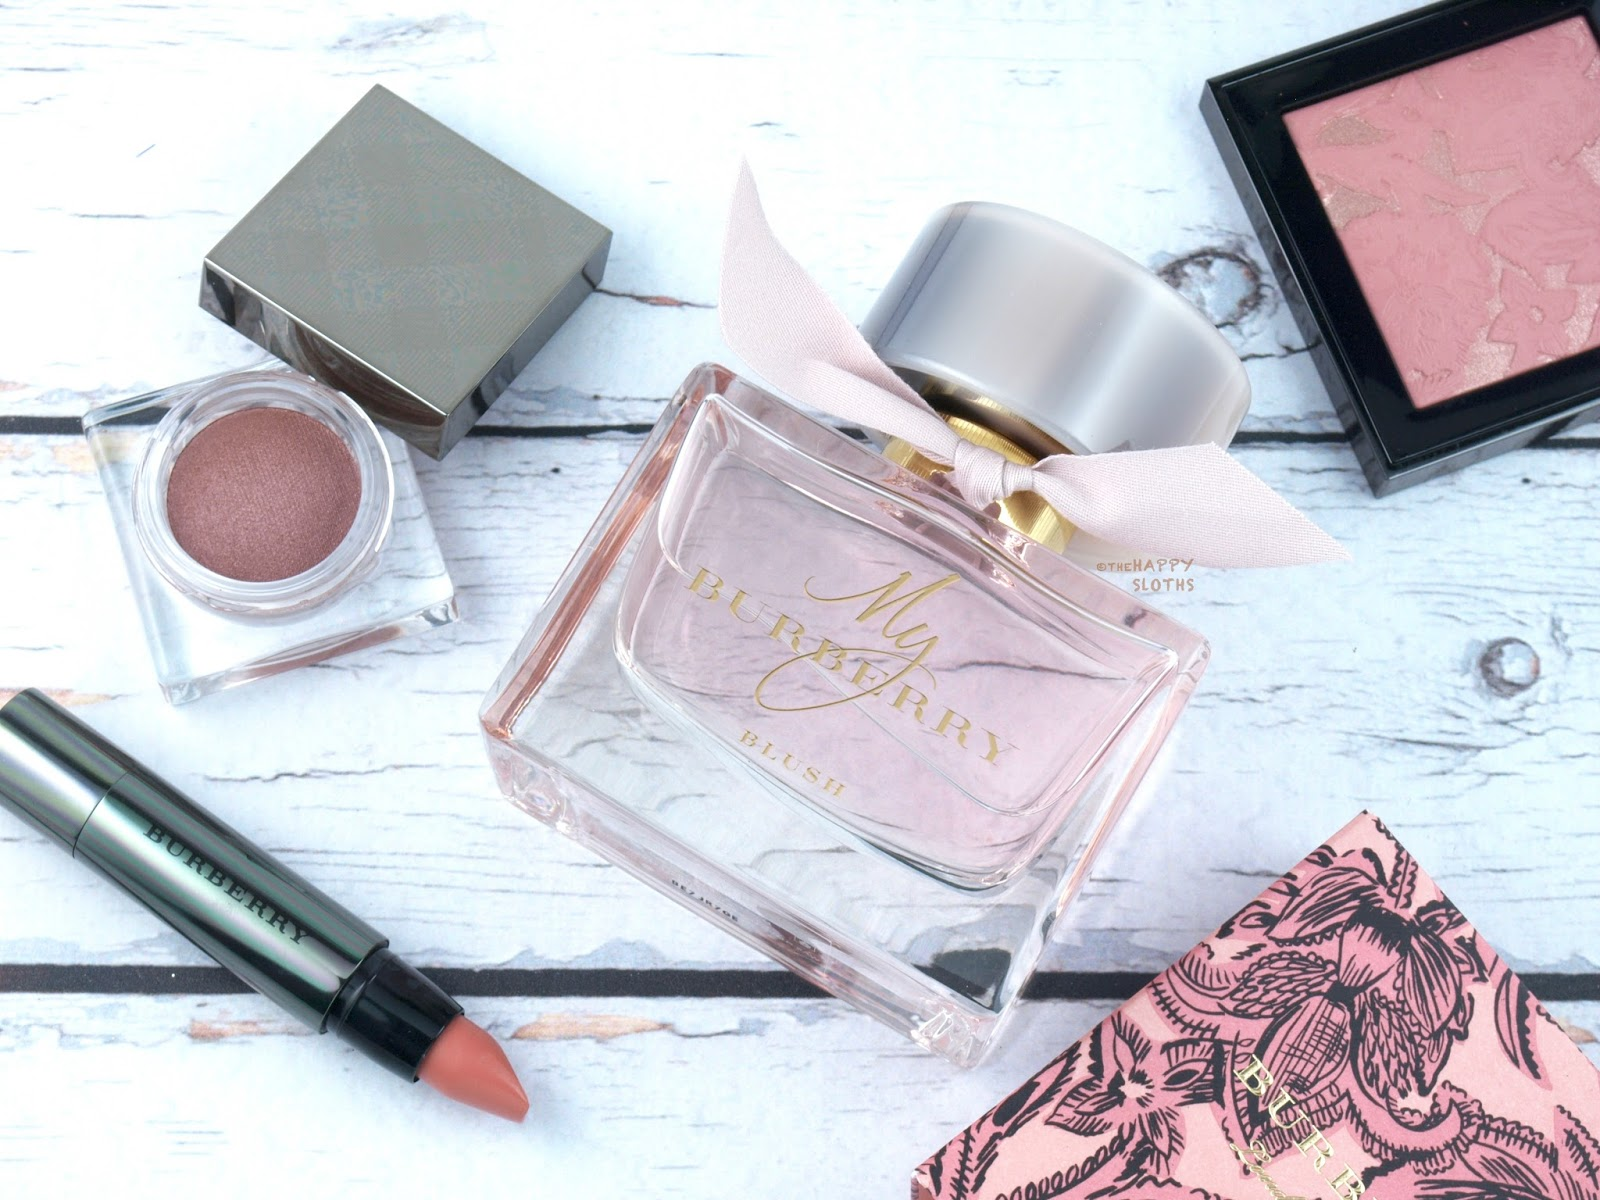 Burberry My Burberry Blush Eau de Parfum: Review